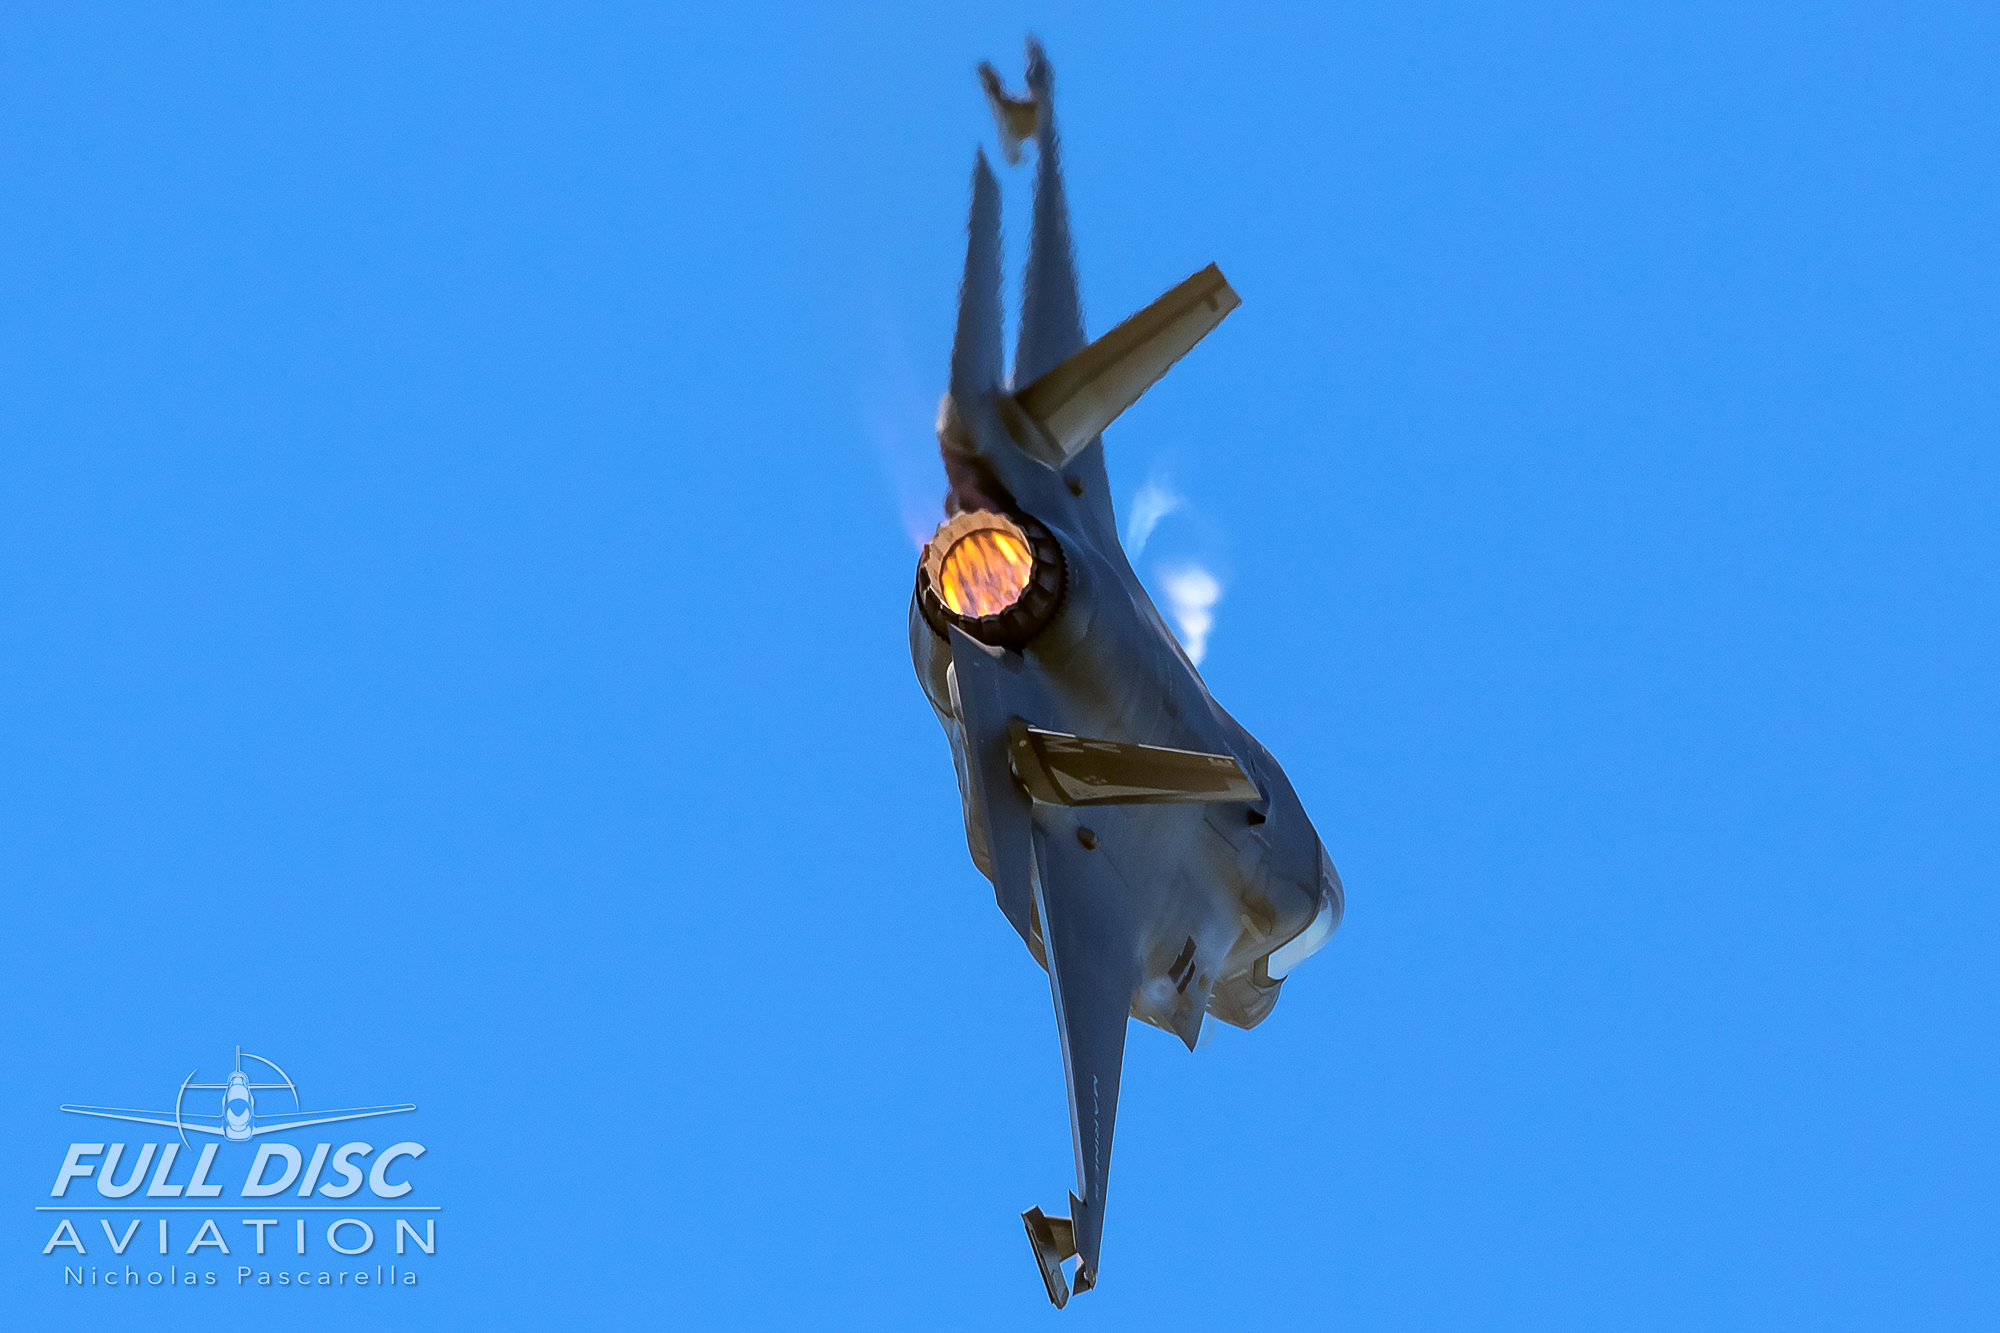 turnandburn_f35b_mcasbeaufort_nicholaspascarella_fulldiscavation_aviation_airshow.jpg